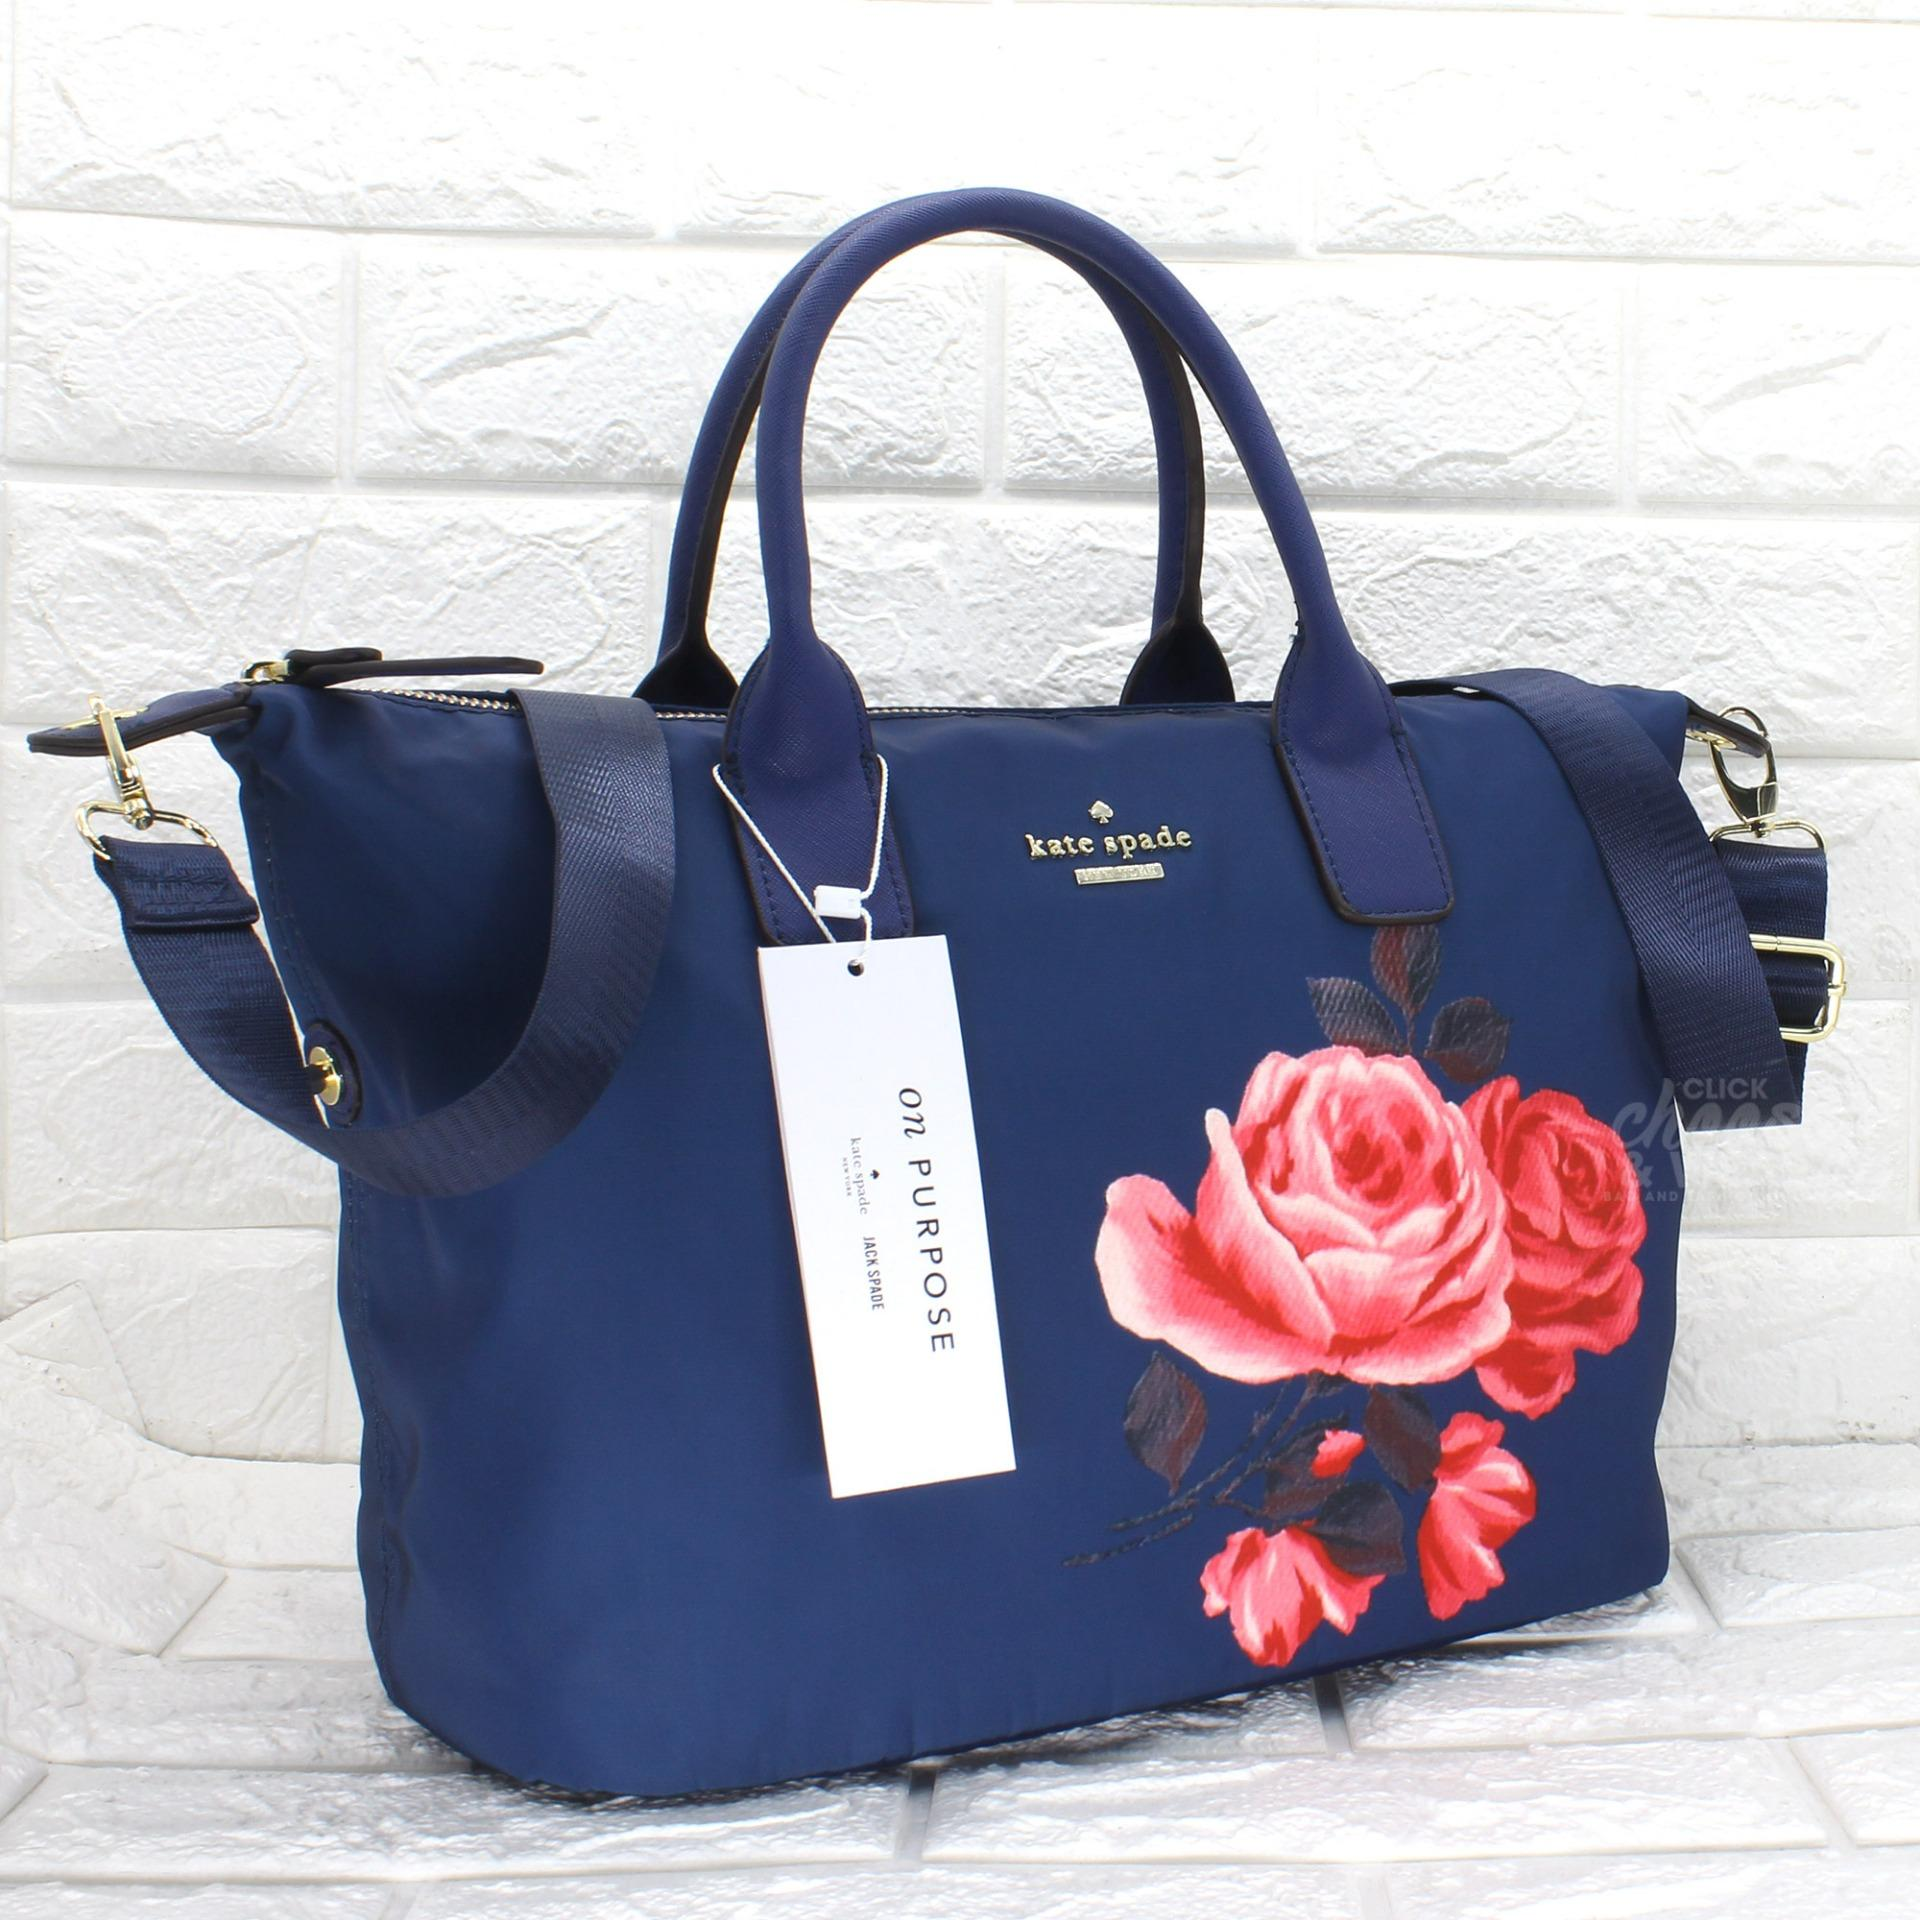 Authentic Kate Spade Classic Weekender Bag Lyla Rose Nylon Tote With Printed Blue